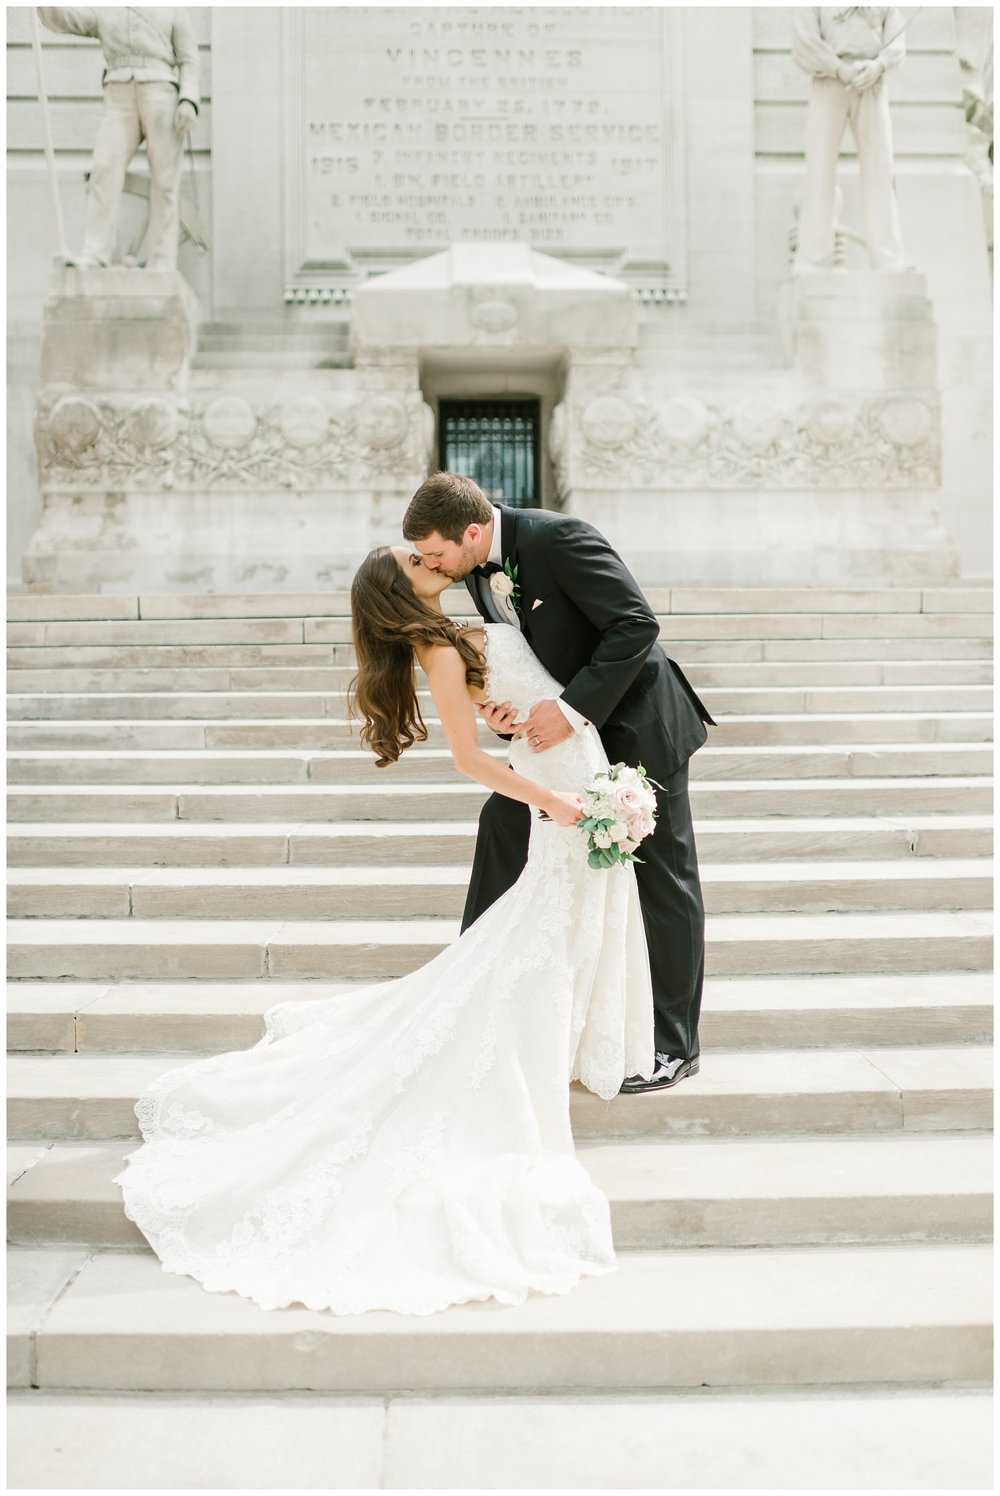 Rebecca_Bridges_Photography_Indianapolis_Wedding_Photographer_6835.jpg